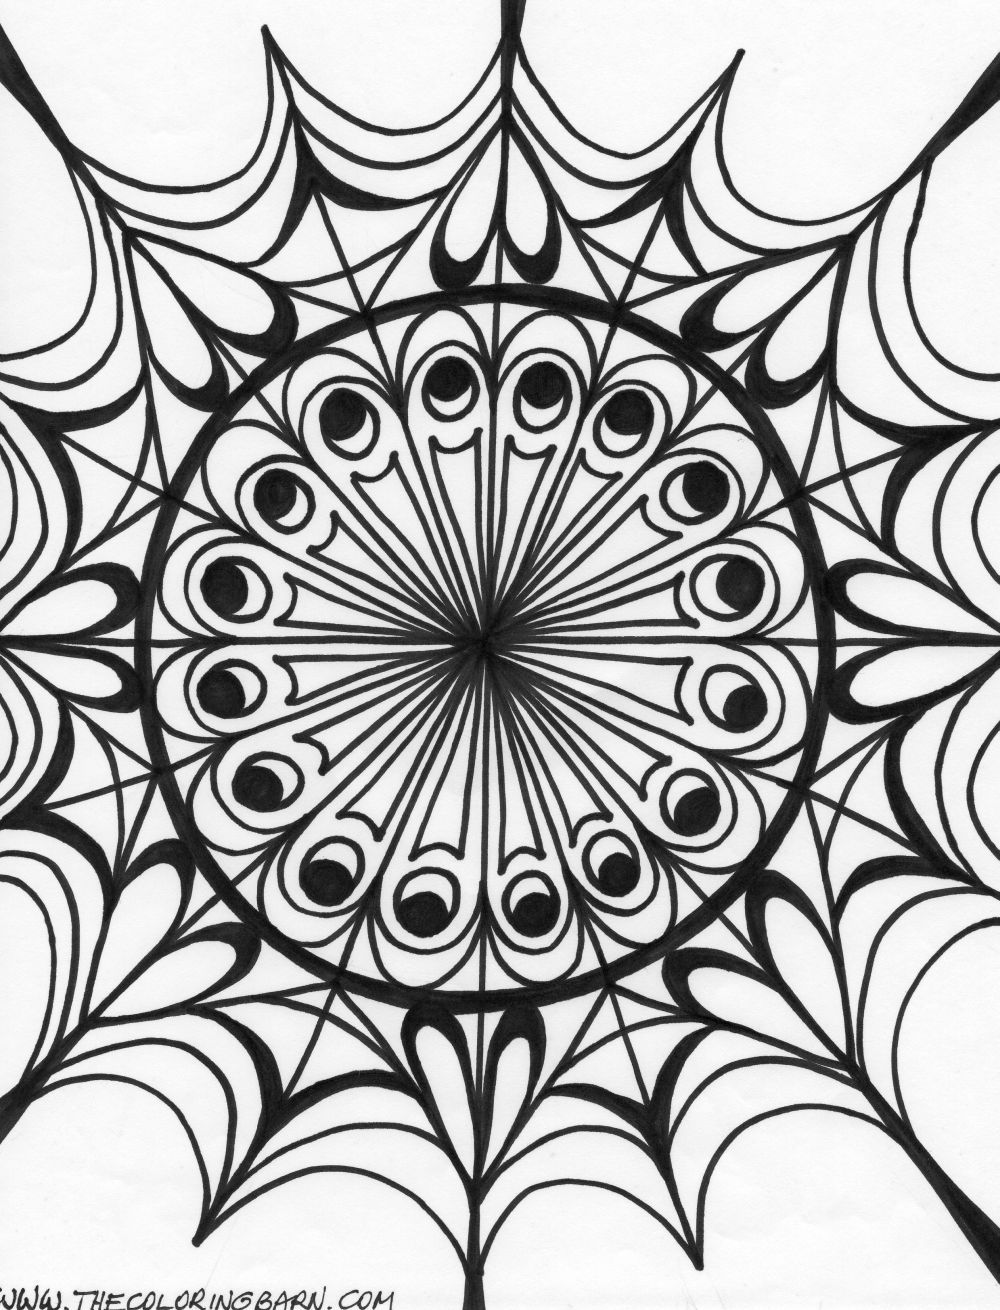 Free Printable Kaleidoscope Coloring Book Pages Coloring Pages Free Printable Coloring Pages Coloring Book Pages